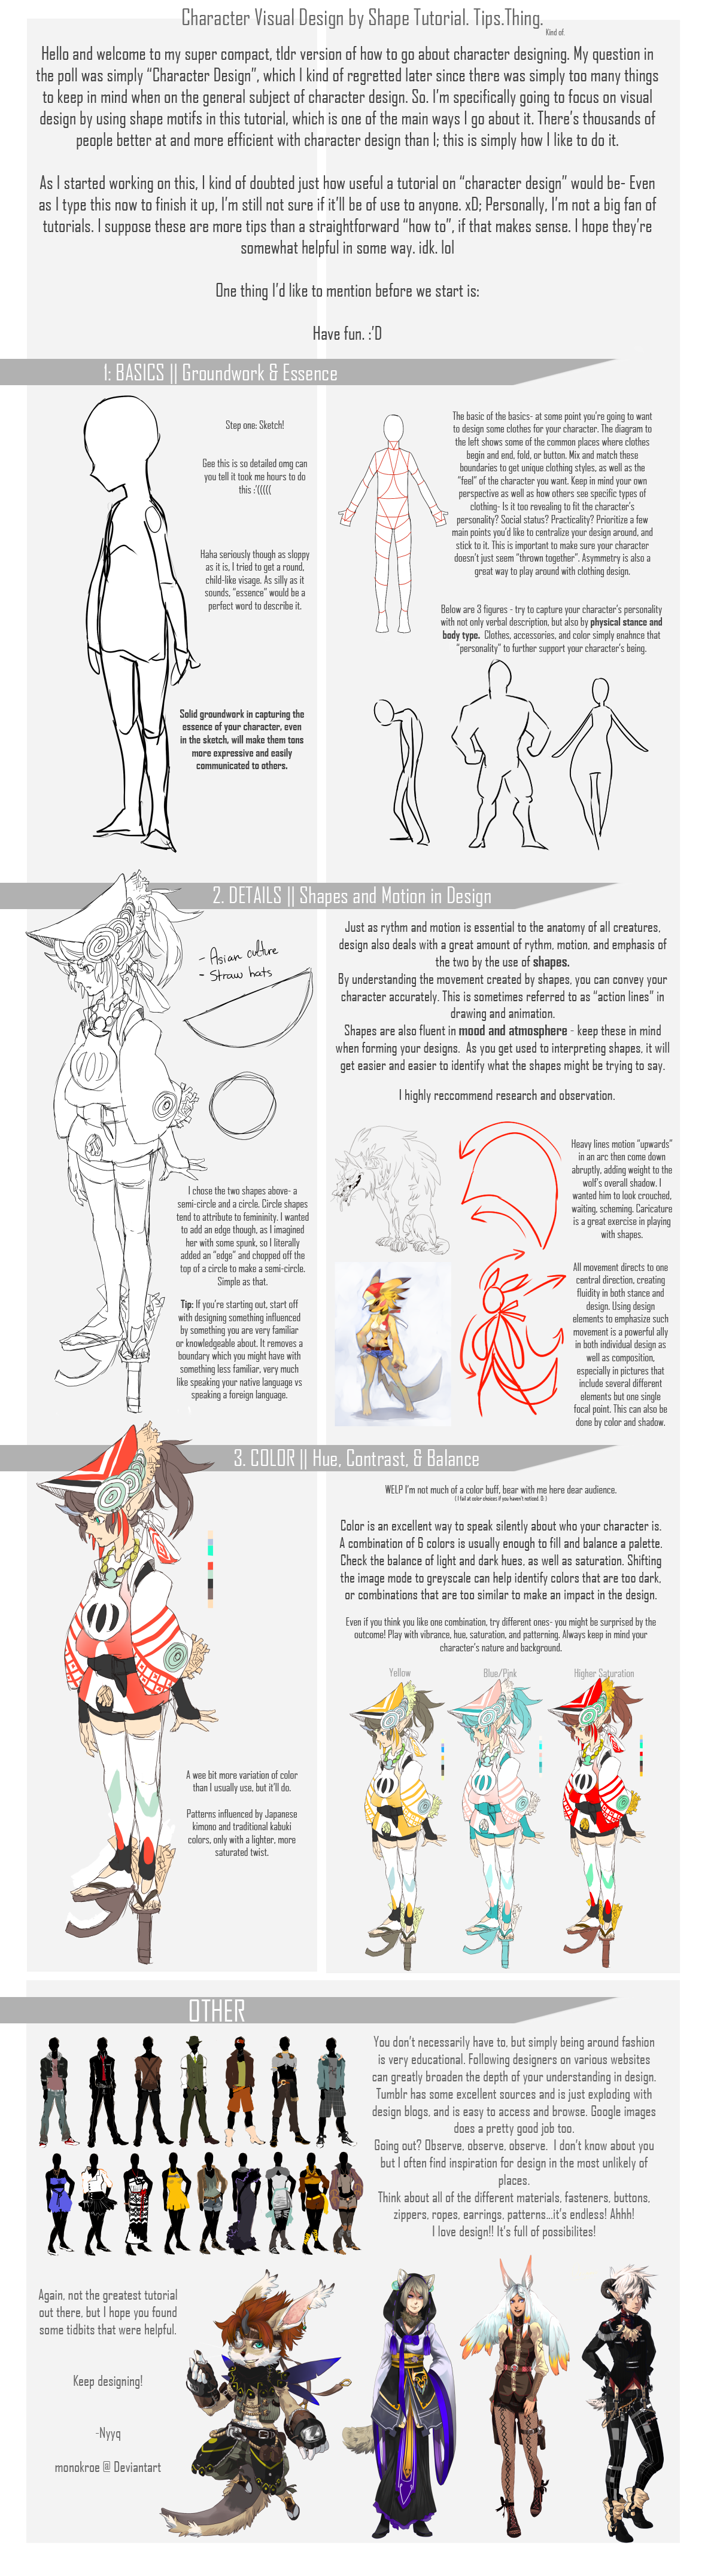 Digital Character Design Tutorial : Basic character design by shape monokroe on deviantart